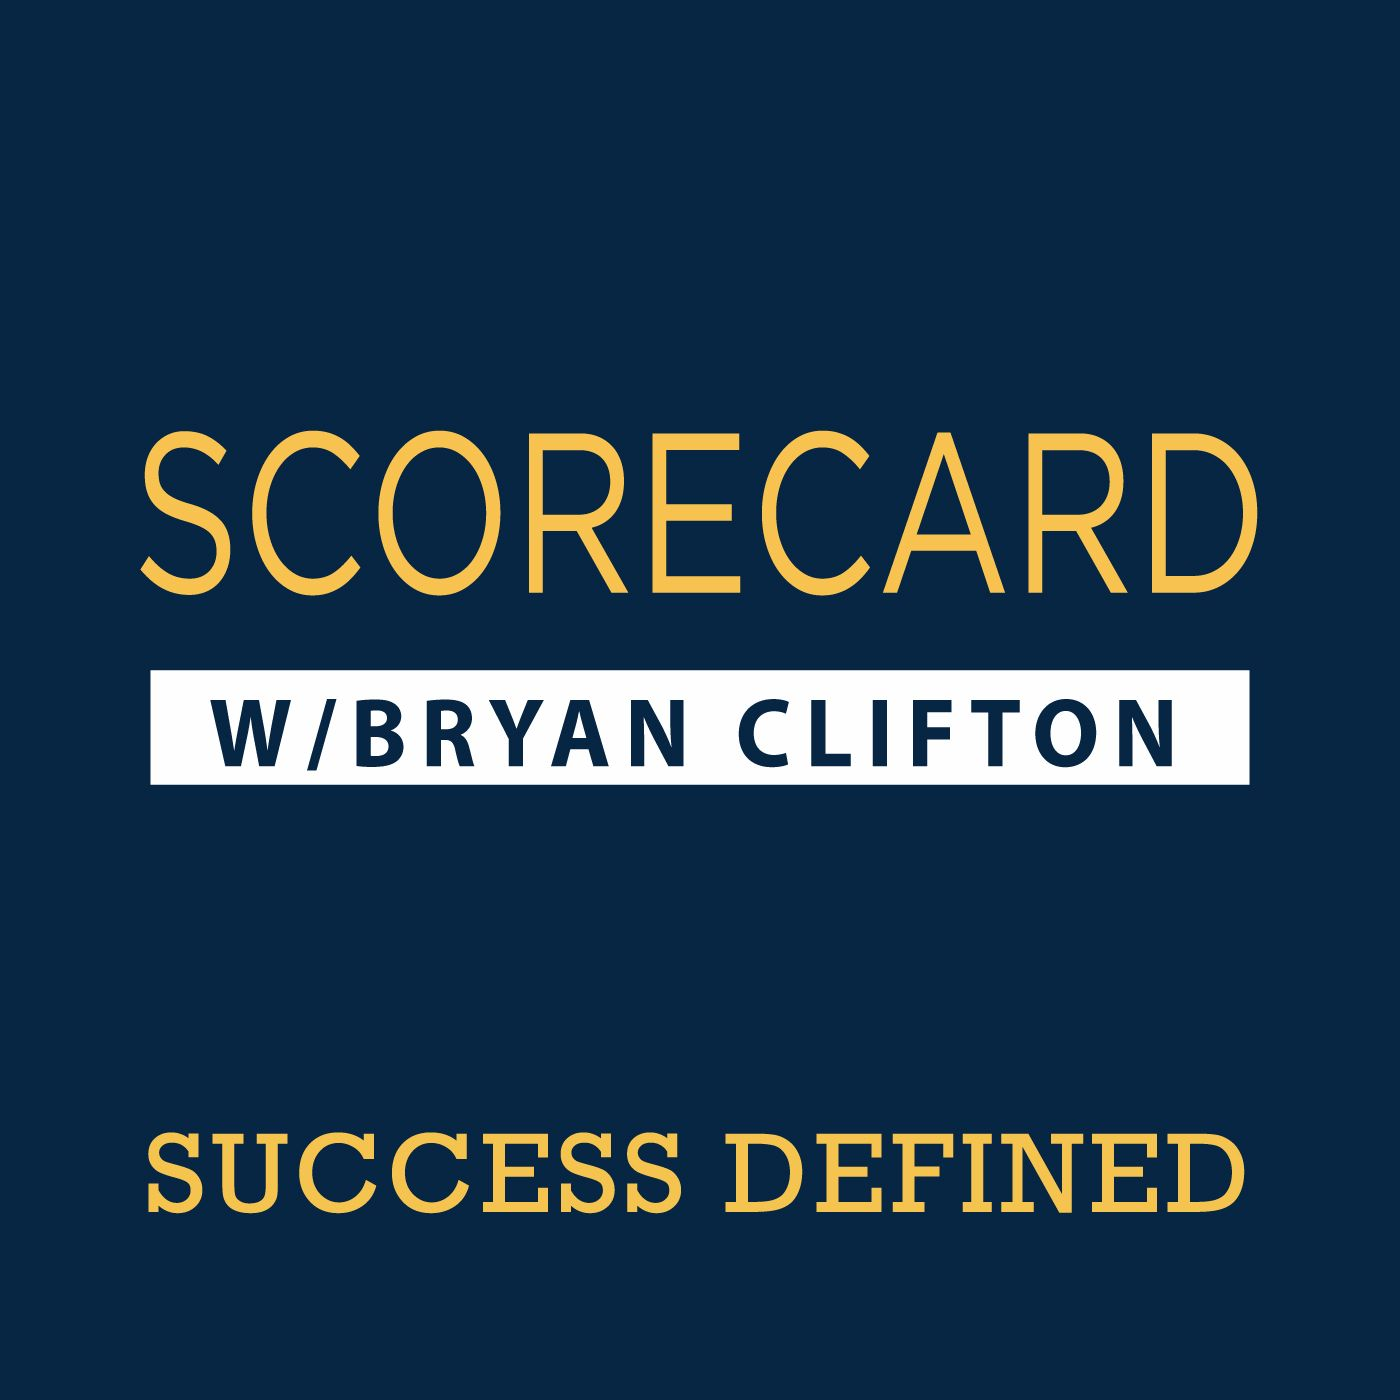 Scorecard with Bryan Clifton